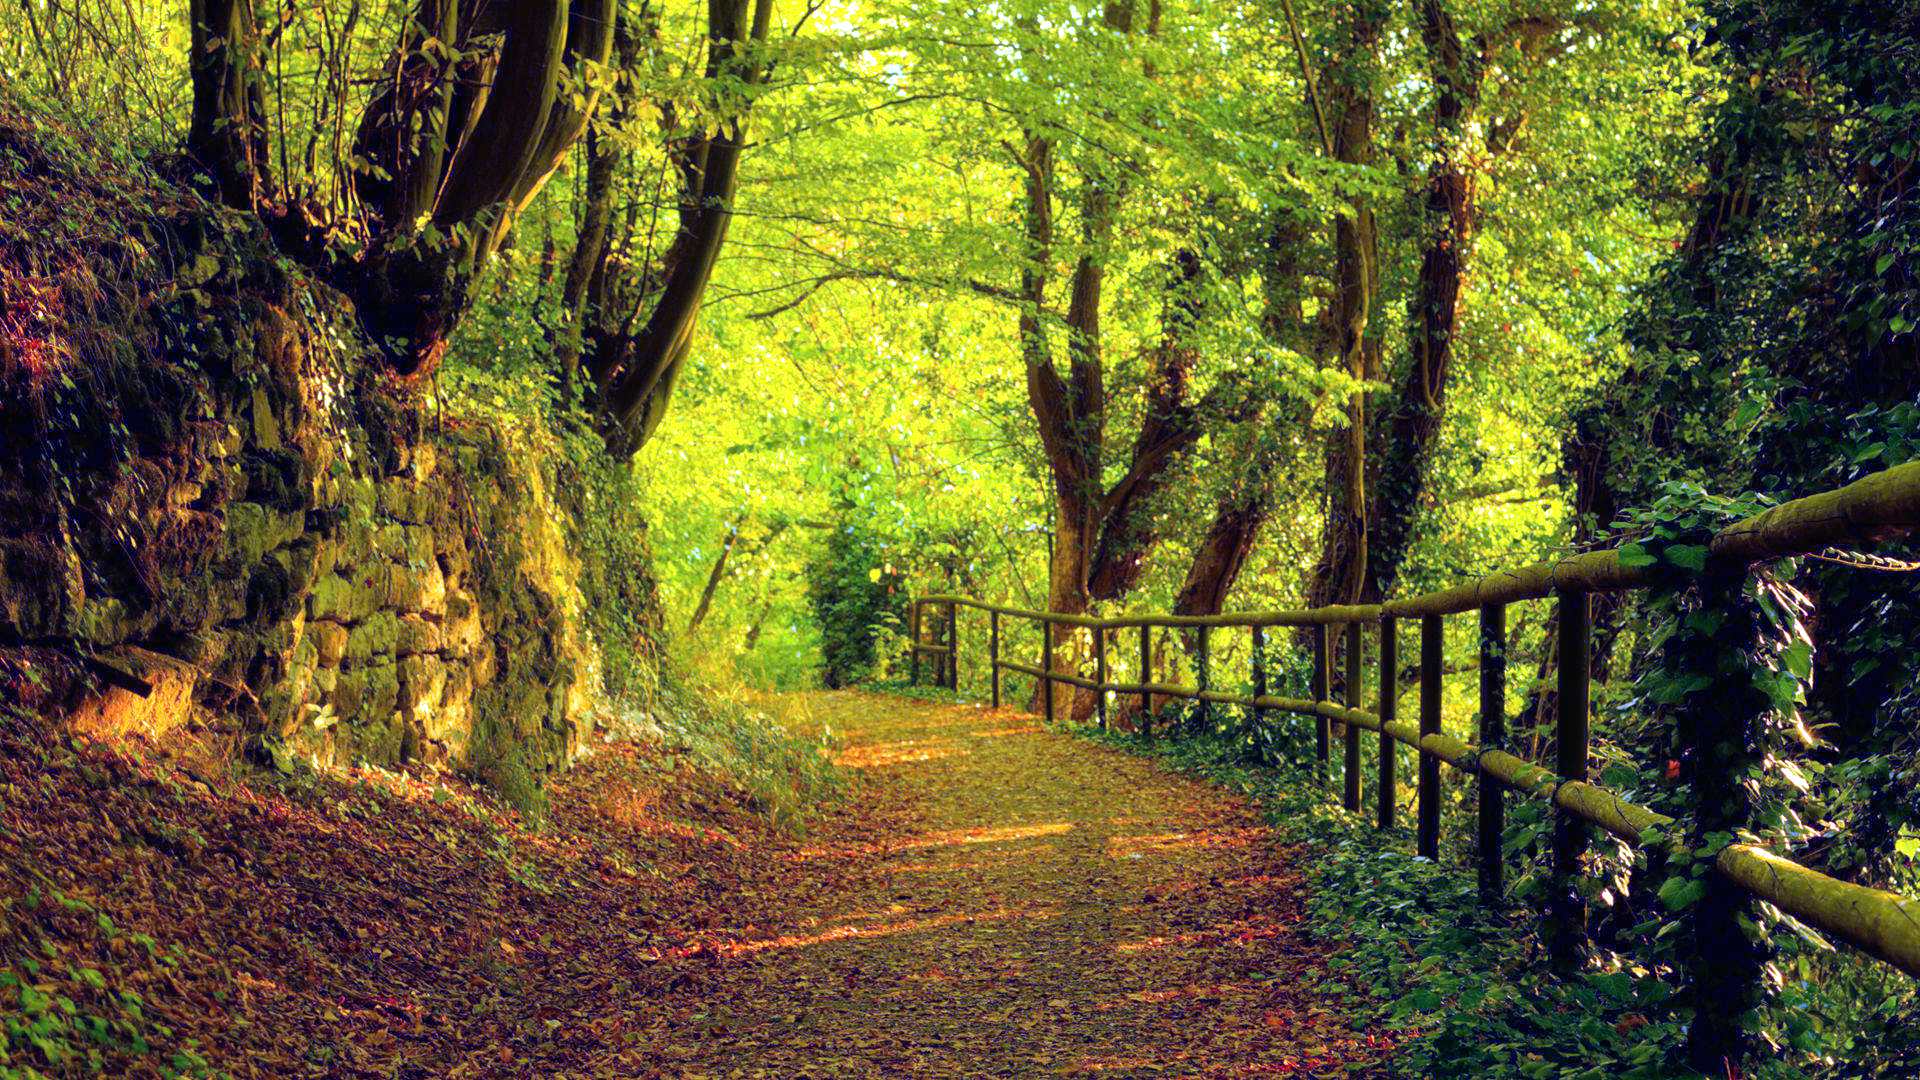 Trees autumn season forest path high resolution wallpaper download forest path images free  Hd